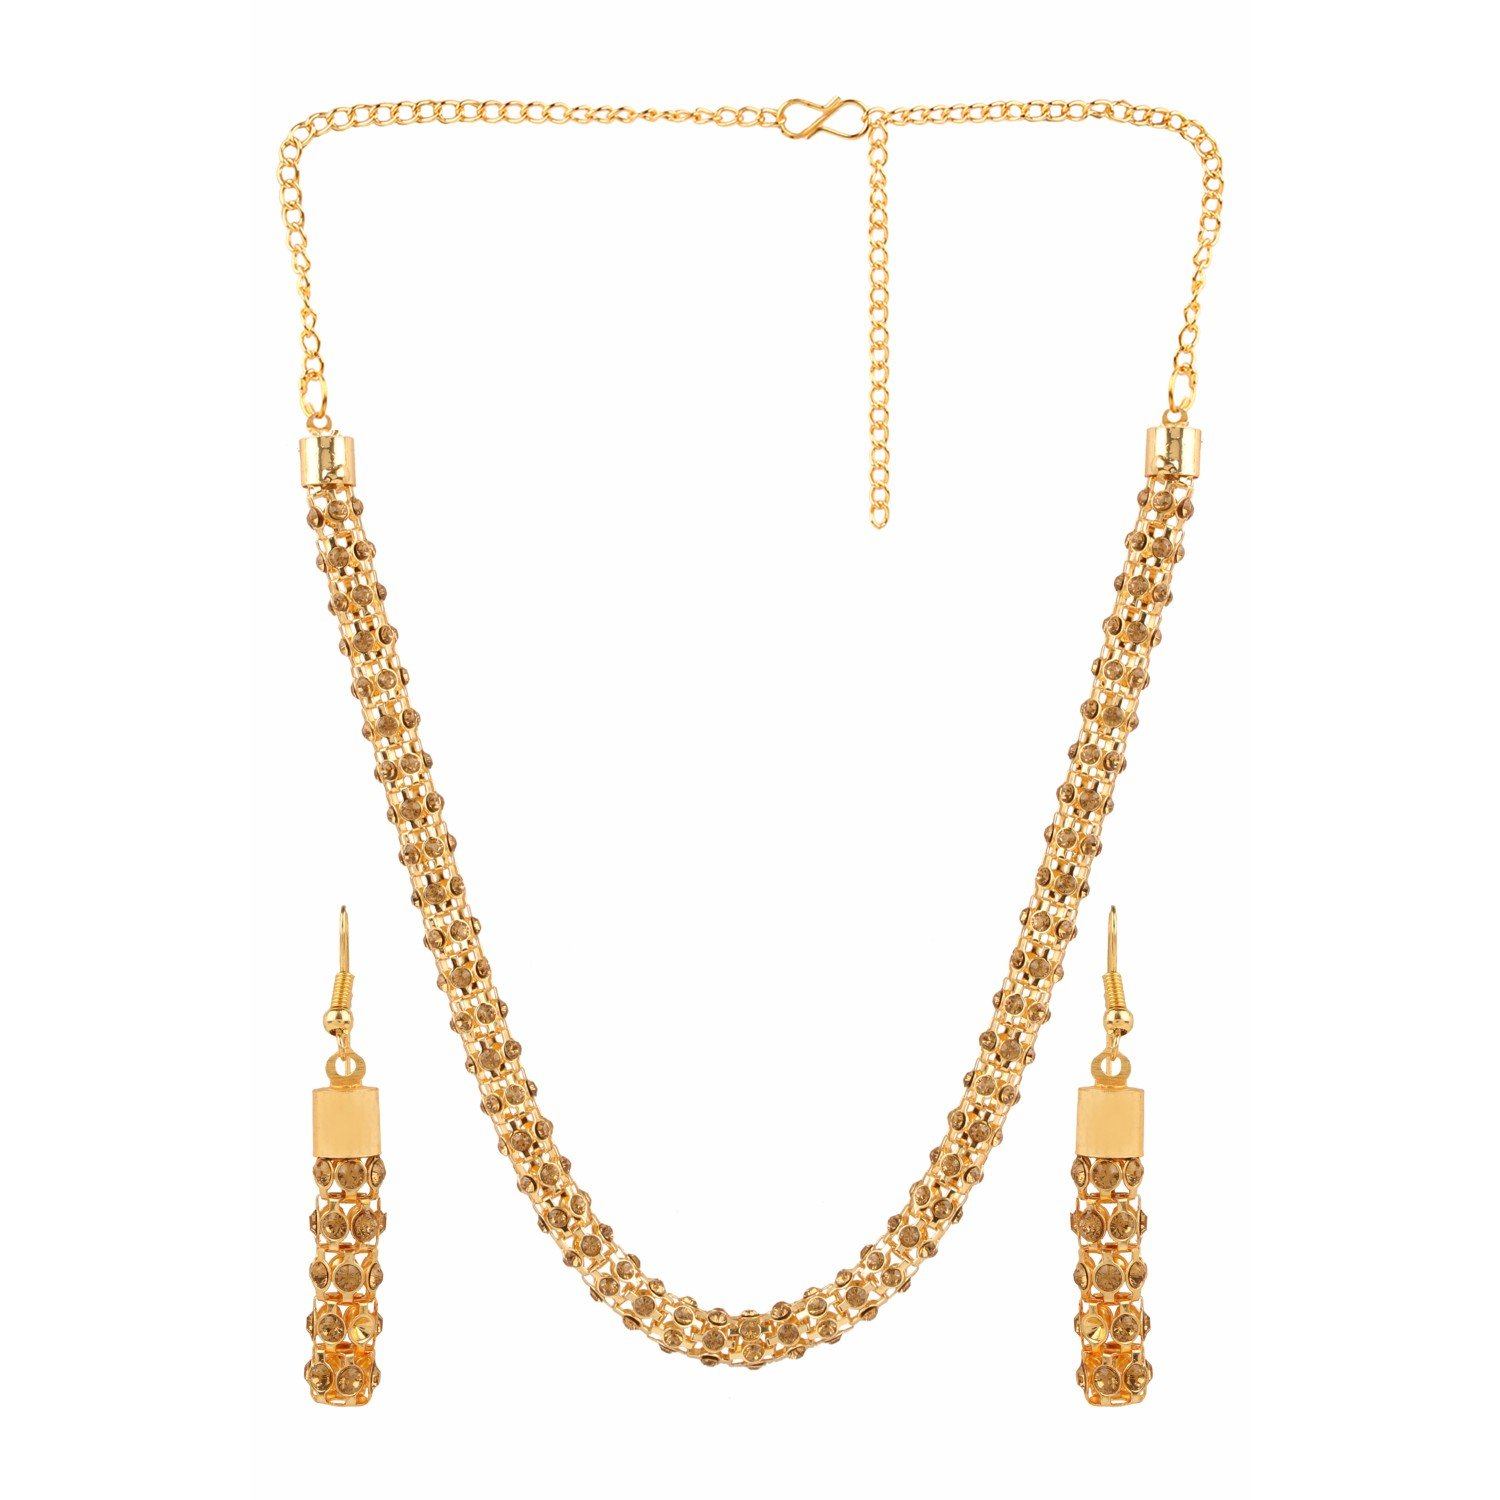 Efulgenz Handcrafted Simulated Rhinestone Beaded Classic Round Chunky Collar Strand Necklace Set Costume Fashion Accessories for Women and Girls